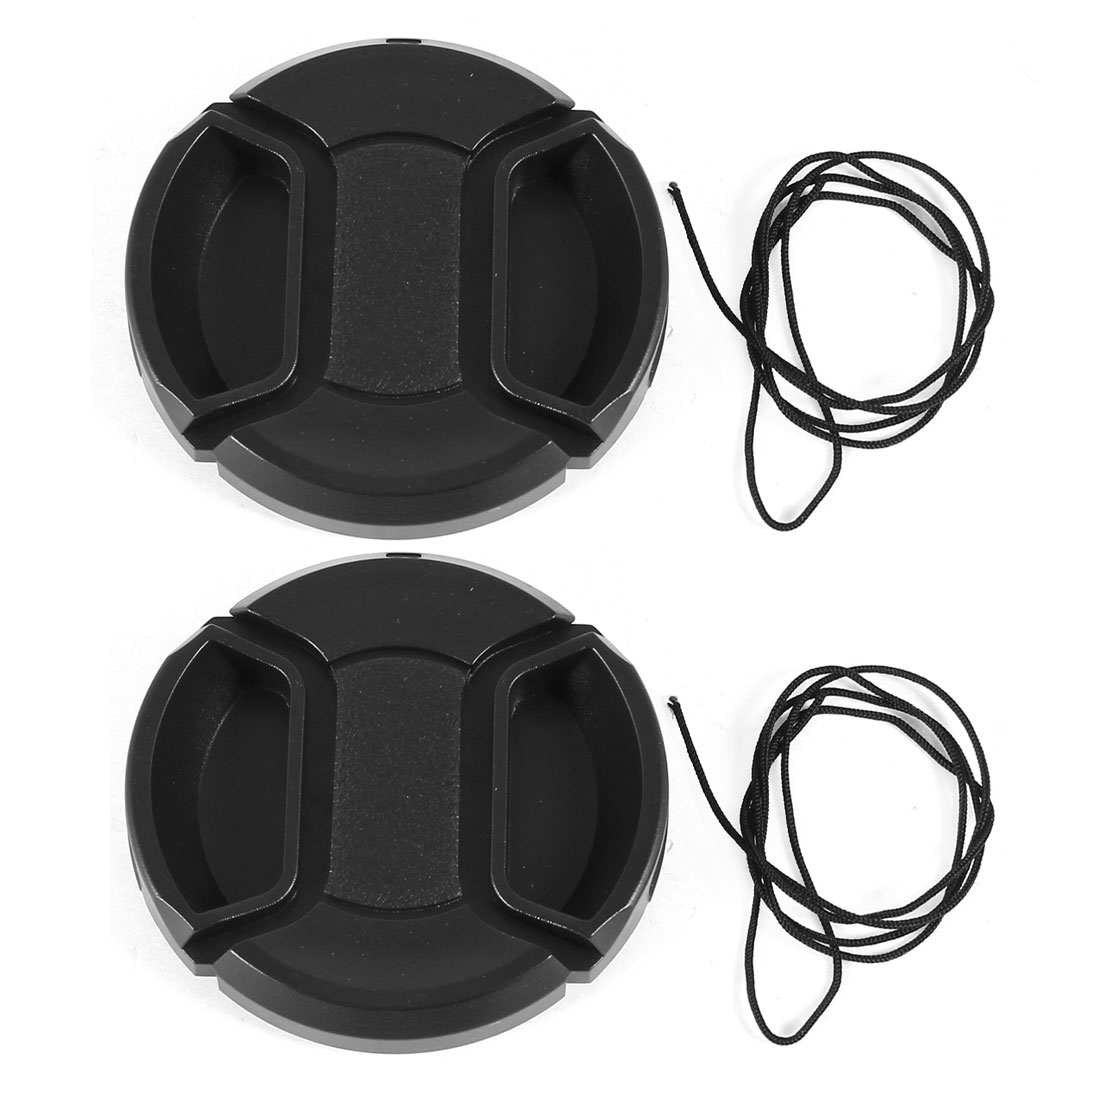 Unique Bargains 2 x 49mm Snap in Style Lens Cap w String Holder Keeper Strap for Digital Camera